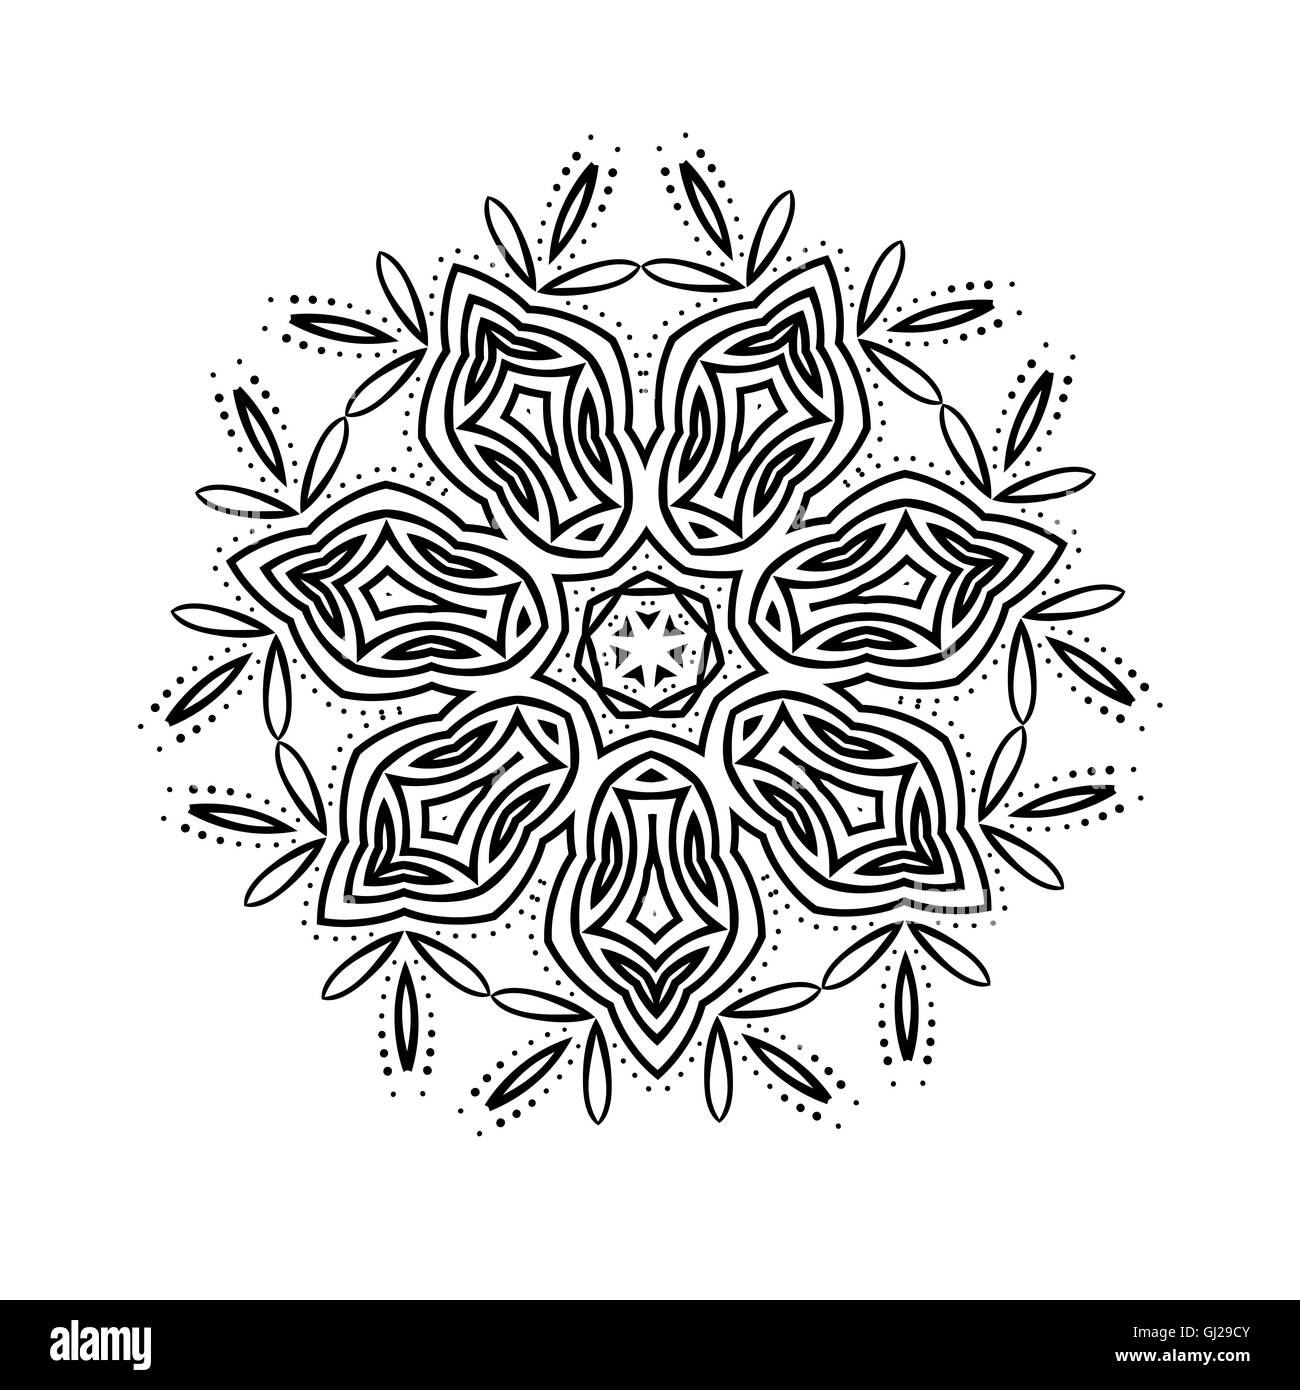 Buddhist Philosophy Mandala Black Flower Pattern Background Yoga Asanas Meditation Indian Knowledge Asian Decorative Painting